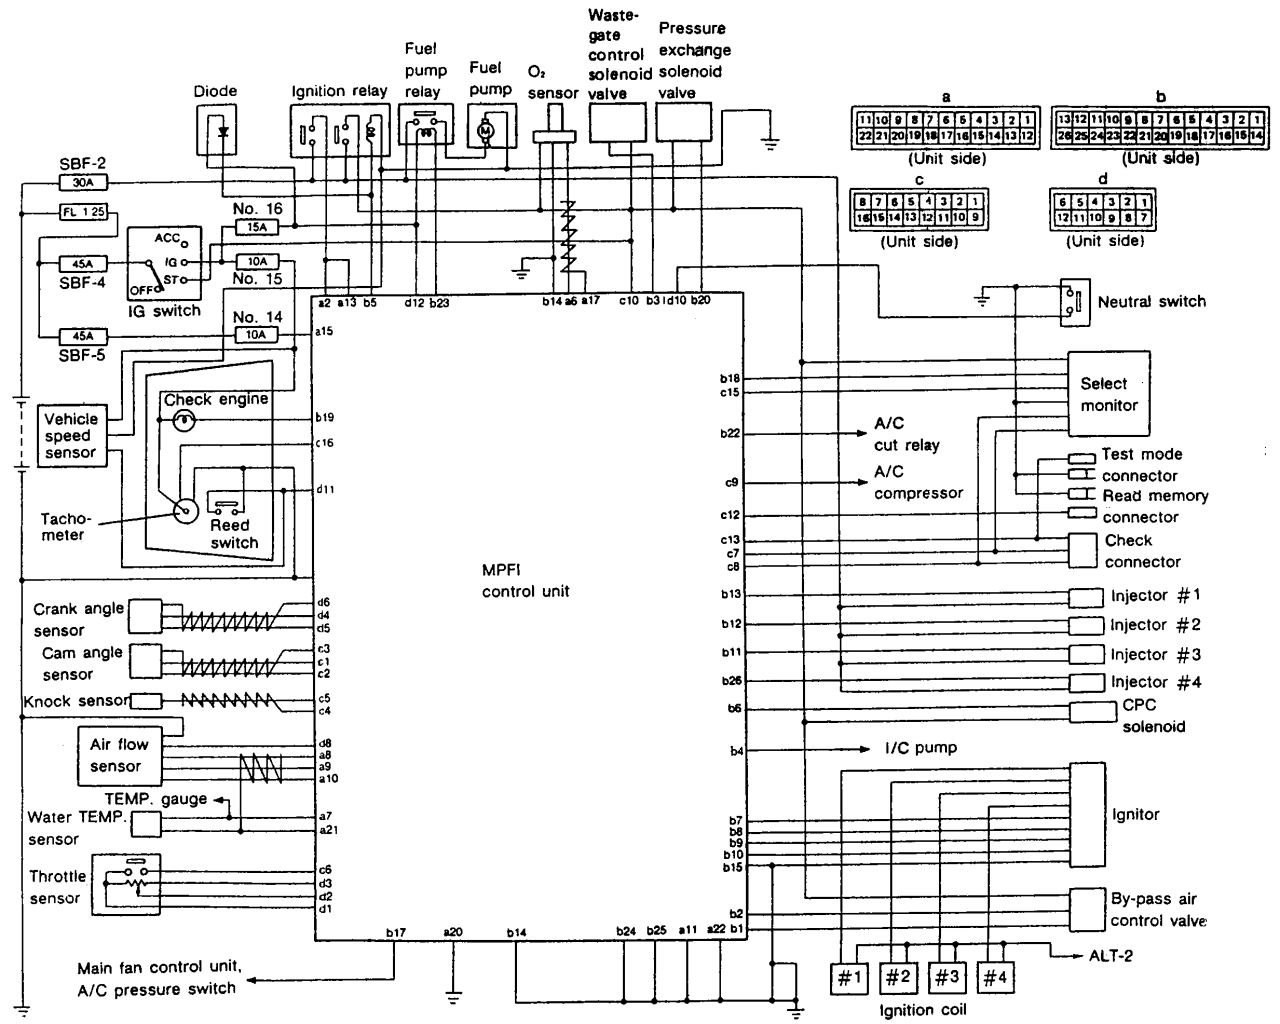 DIAGRAM] 92 Subaru Legacy Wiring Diagram FULL Version HD Quality Wiring  Diagram - DIAGRAMAEXPRESS.CONSERVATOIRE-CHANTERIE.FRdiagramaexpress.conservatoire-chanterie.fr